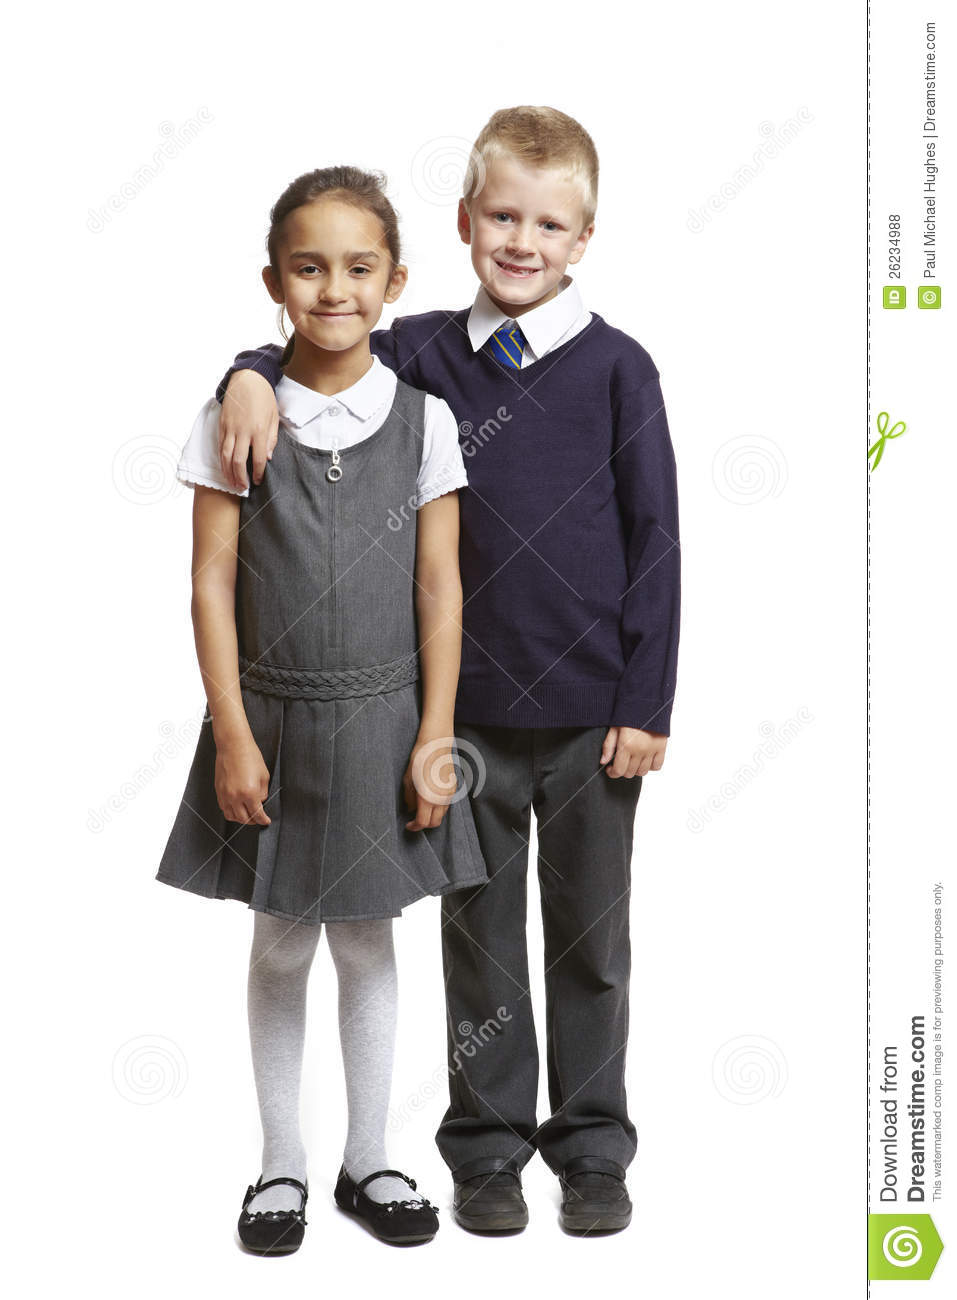 Boy And Girl Bedroom Decor: School Boy And Girl Smiling Royalty Free Stock Photos